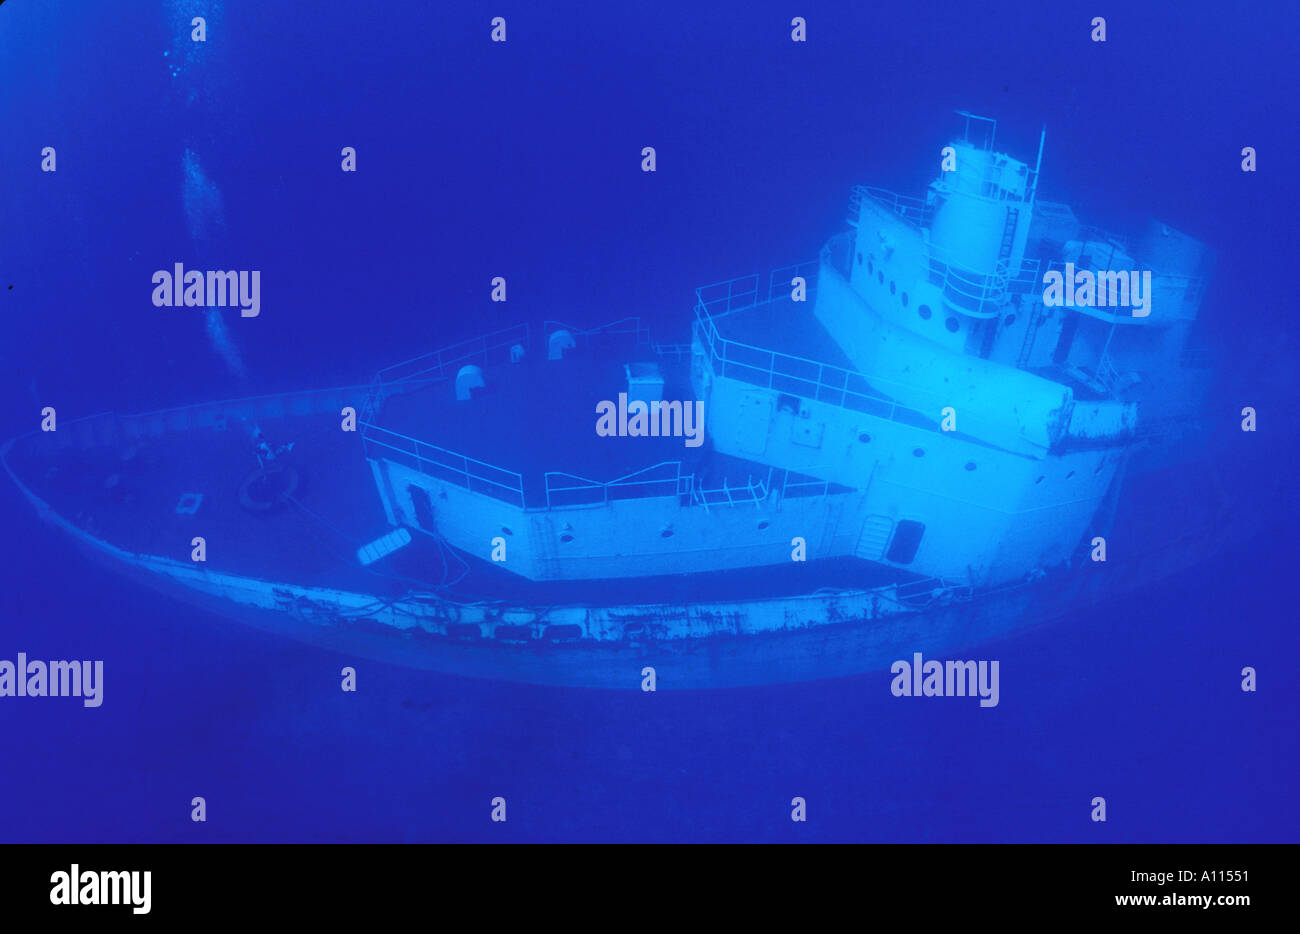 A WIDE ANGLE OF A COAST GUARD CUTTER SUNK AS AN ARTIFICAL REEF IN THE FLORIDA KEYS - Stock Image